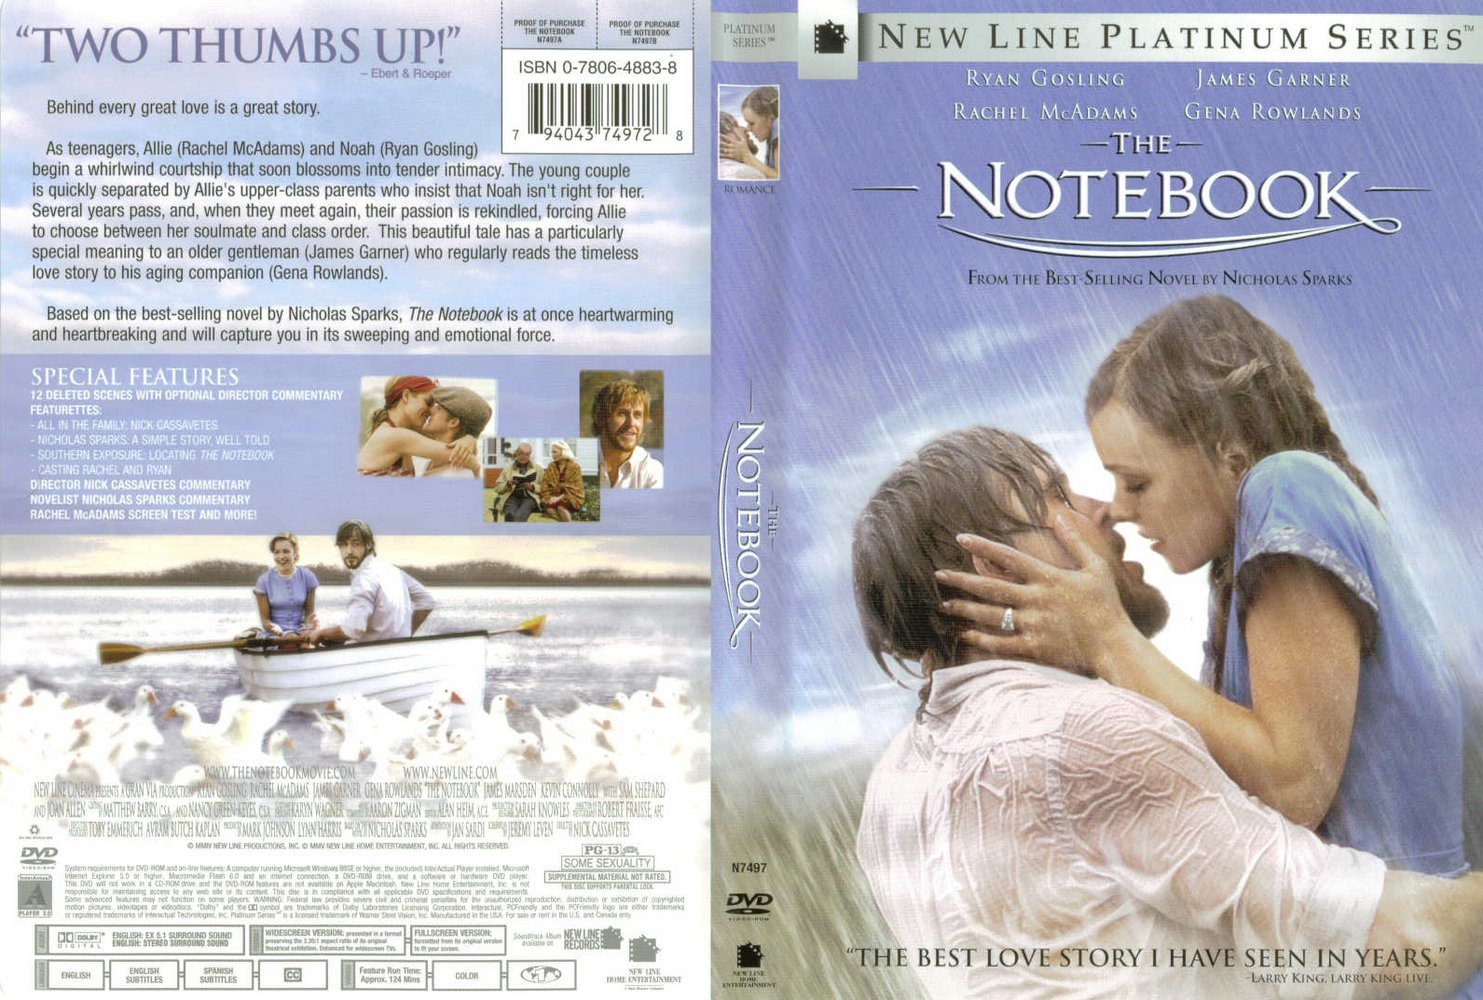 book report on the notebook by nicholas sparks 91 121 113 106 book report on the notebook by nicholas sparks